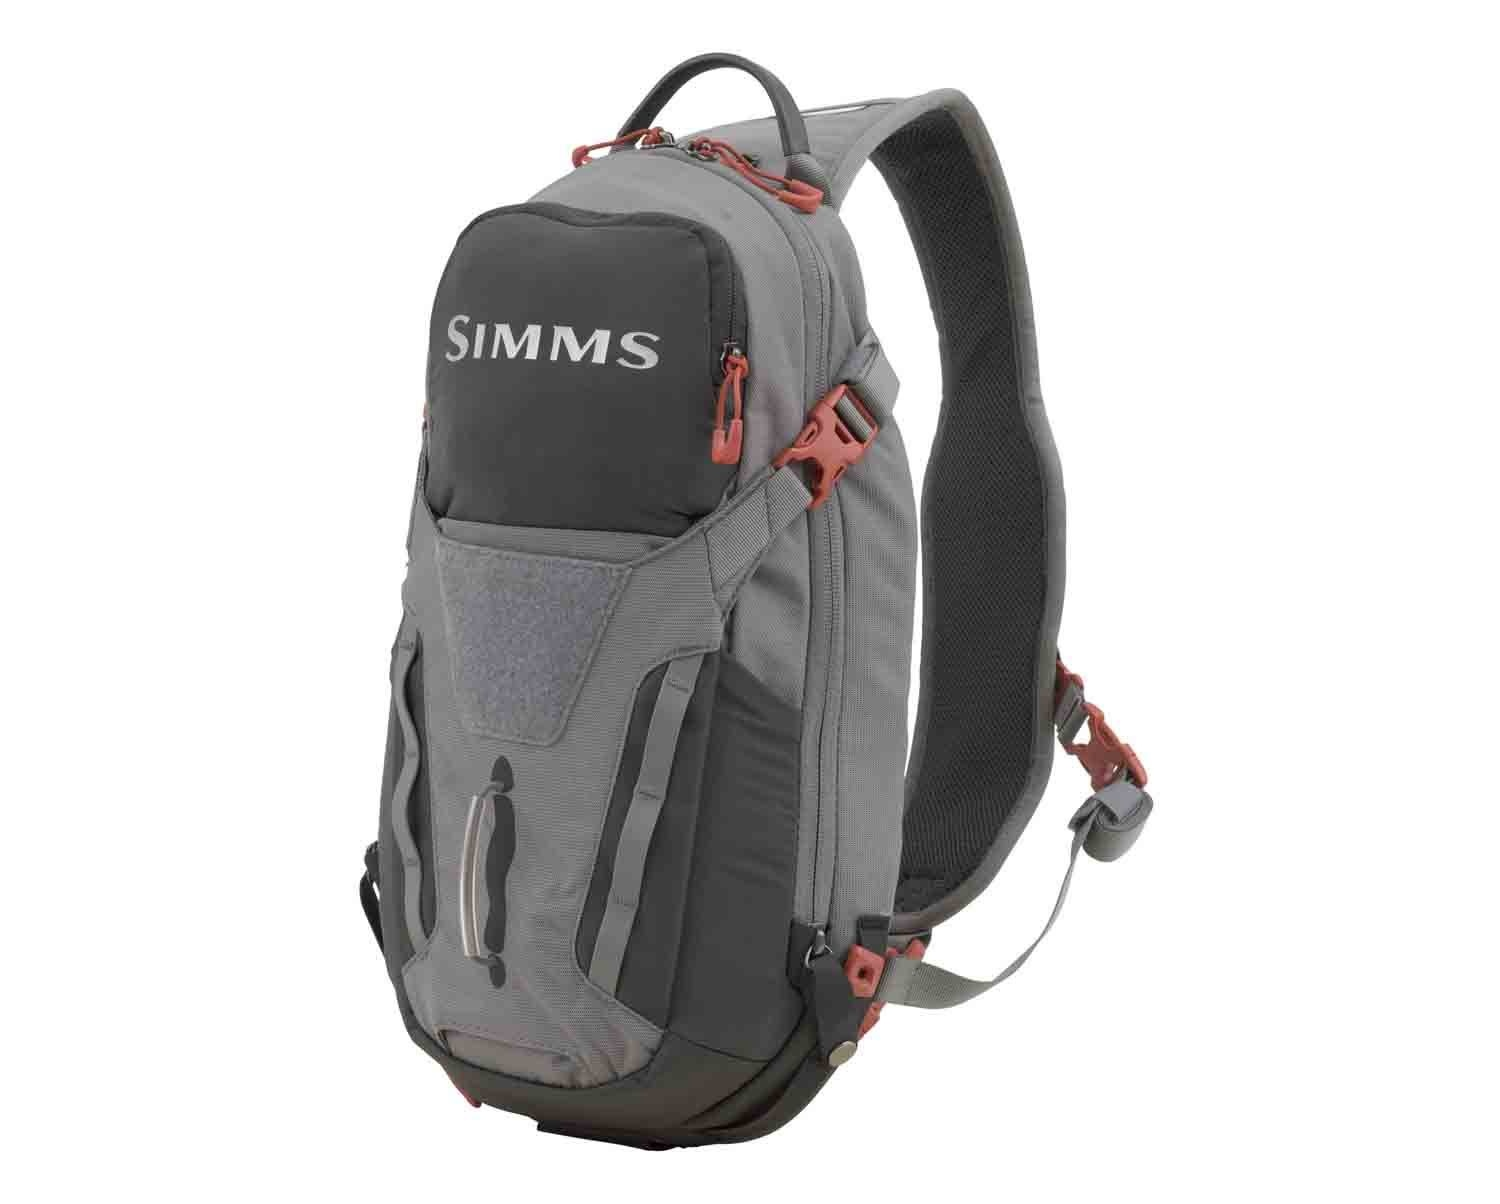 Simms Ambidextrous Sling Pack